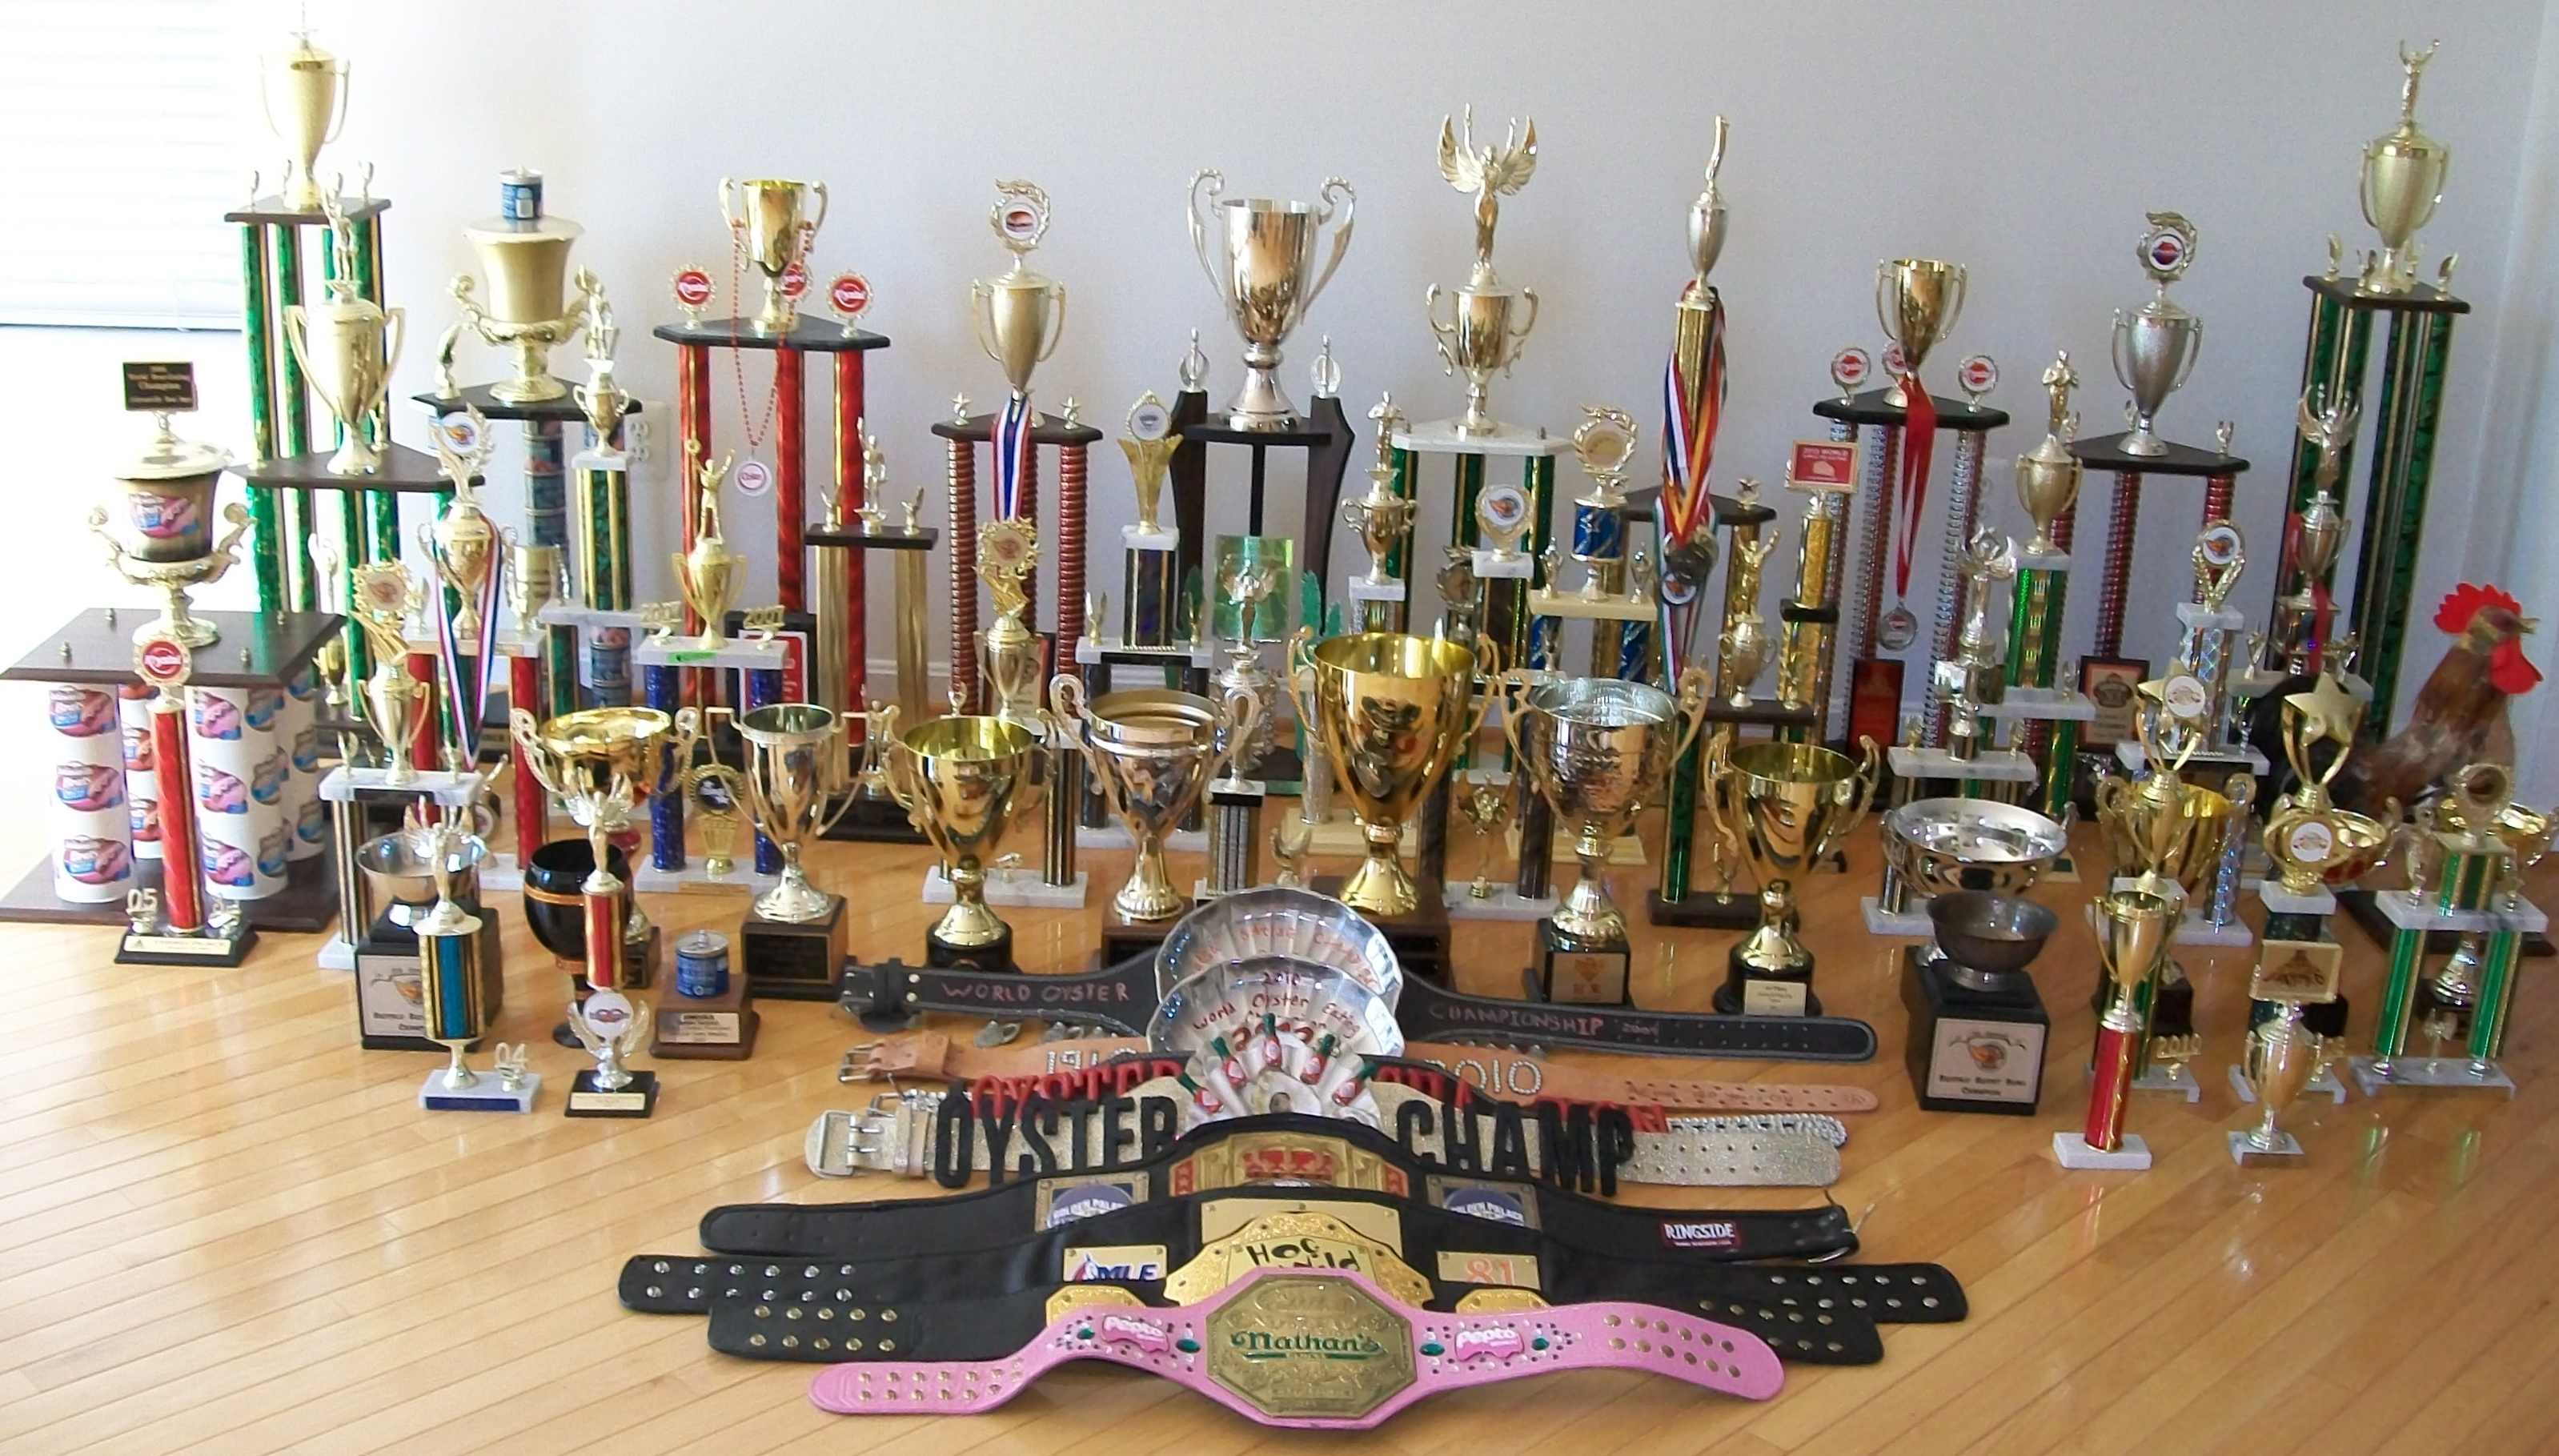 Just_Me/Sonya_Trophies_10-09-14.jpg